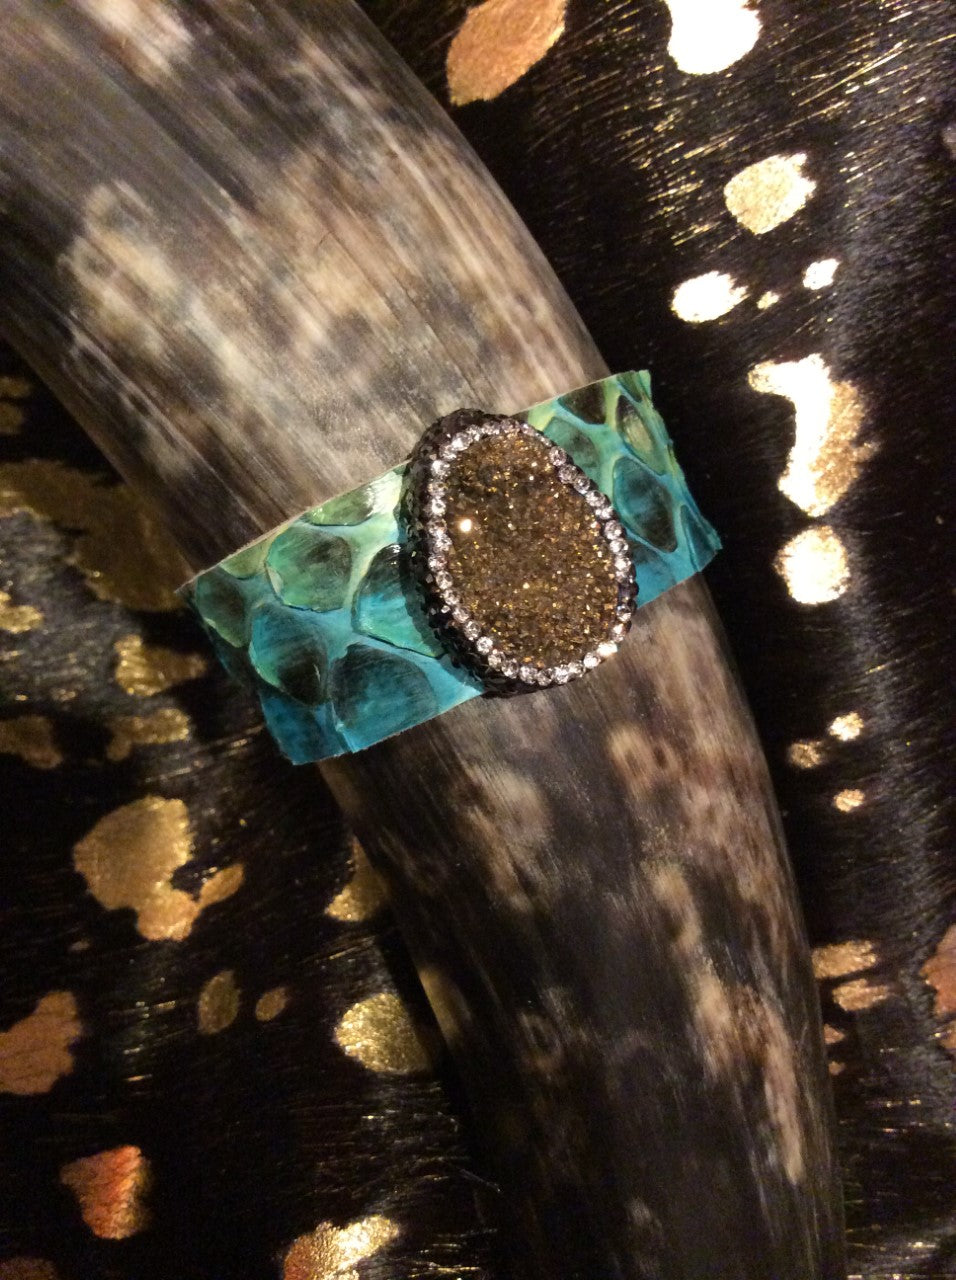 Turquoise Python Cuff Snake Bracelet Leather Jewelry Leather Gold Druzy  AUDISH Python Leather Cuff Multi-color Turquoise Snake Skin Bracelet with Gold Druzy Natural Stone Embellished with Crystals, Jewelry,Woman's, Cuff, Bangle, Bracelet, Wrap